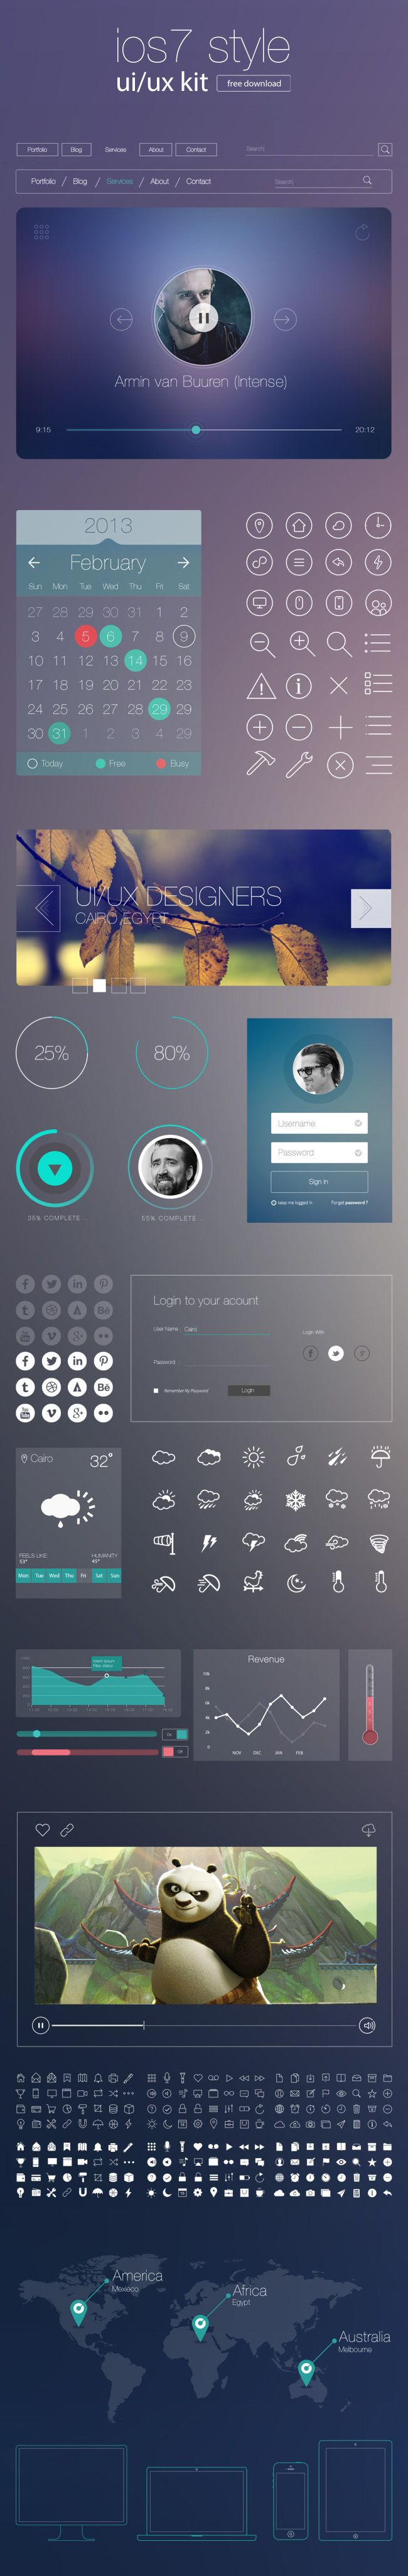 iOS7 style UI Kit : Freebie -Mahmoud FahimandMohamed…